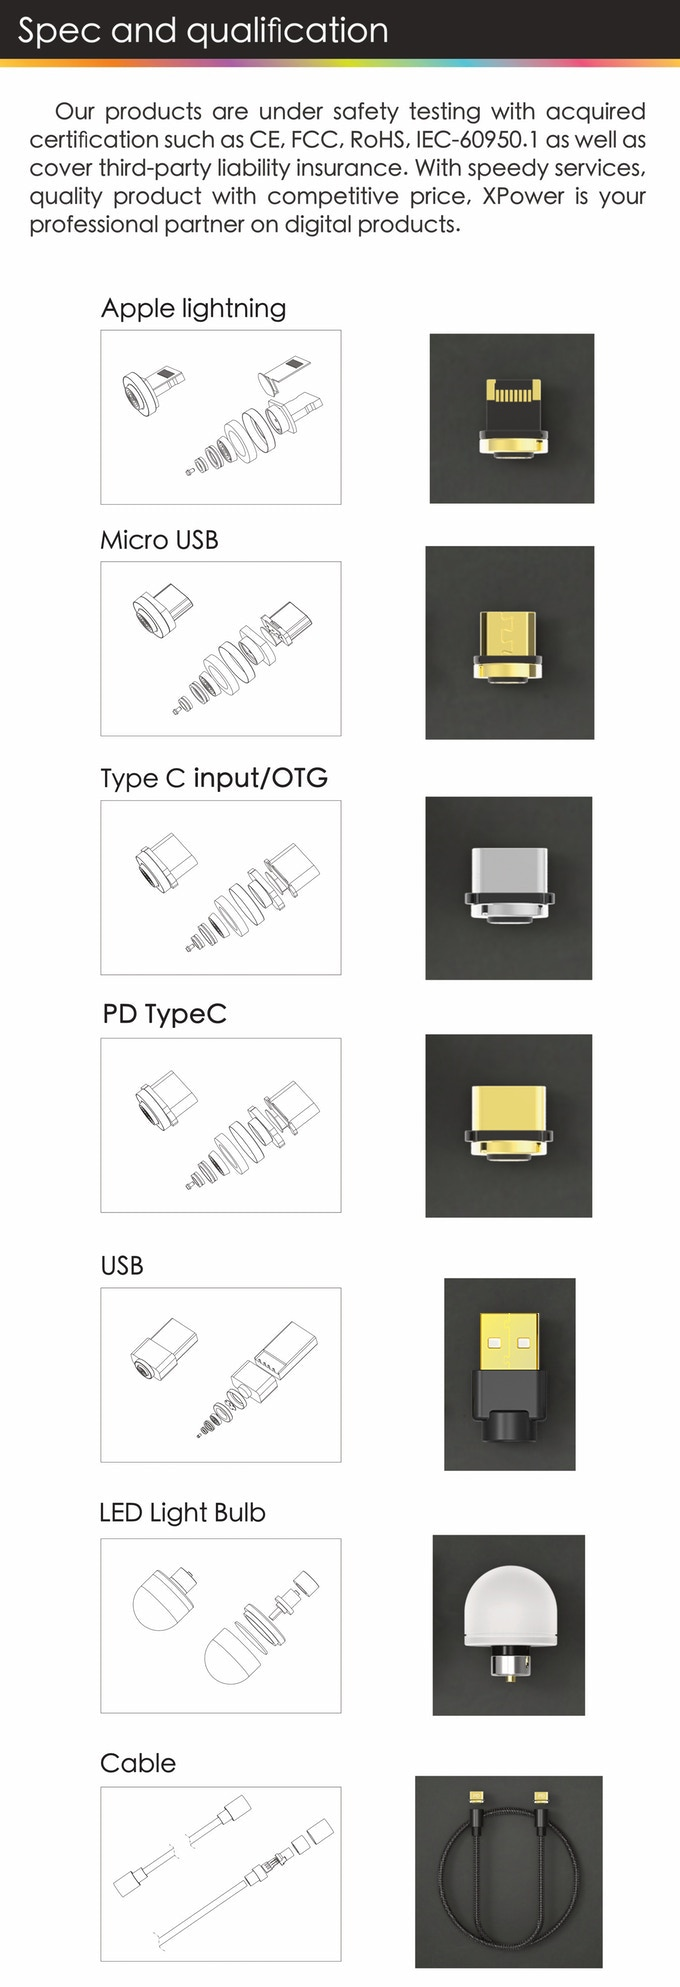 Double Mag 2 Way Magnetic Cable For Macbook Phones By Xpower Log On Otg Micro Usb Lo 28 Gold Spec Of The Product